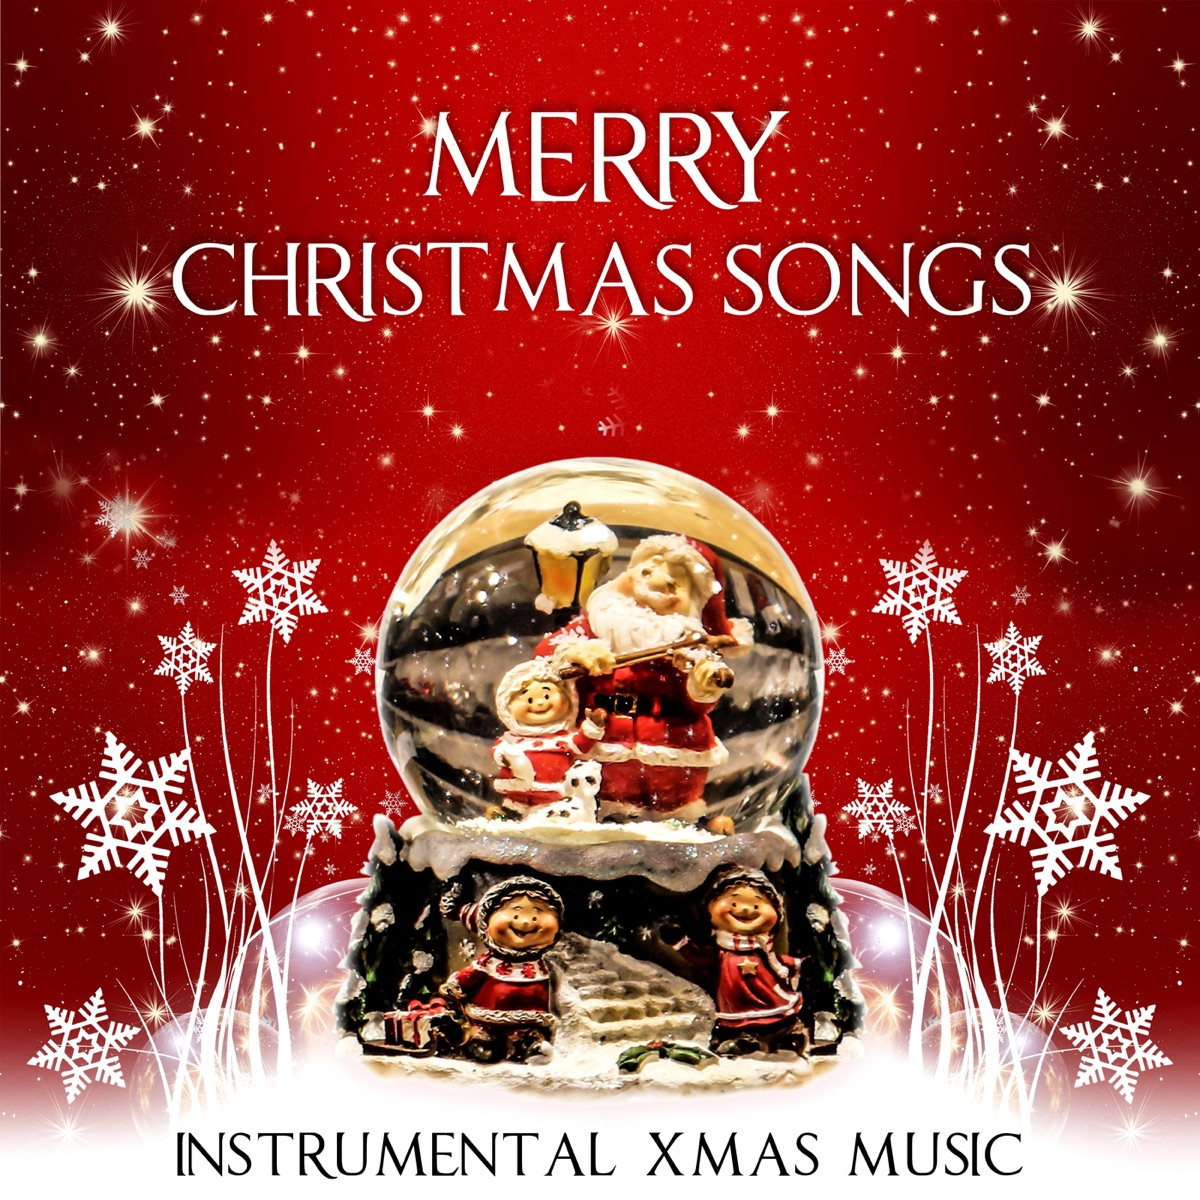 christmas songs for kids preschool religious christmas music unique holiday time spent with family - Best Christian Christmas Songs